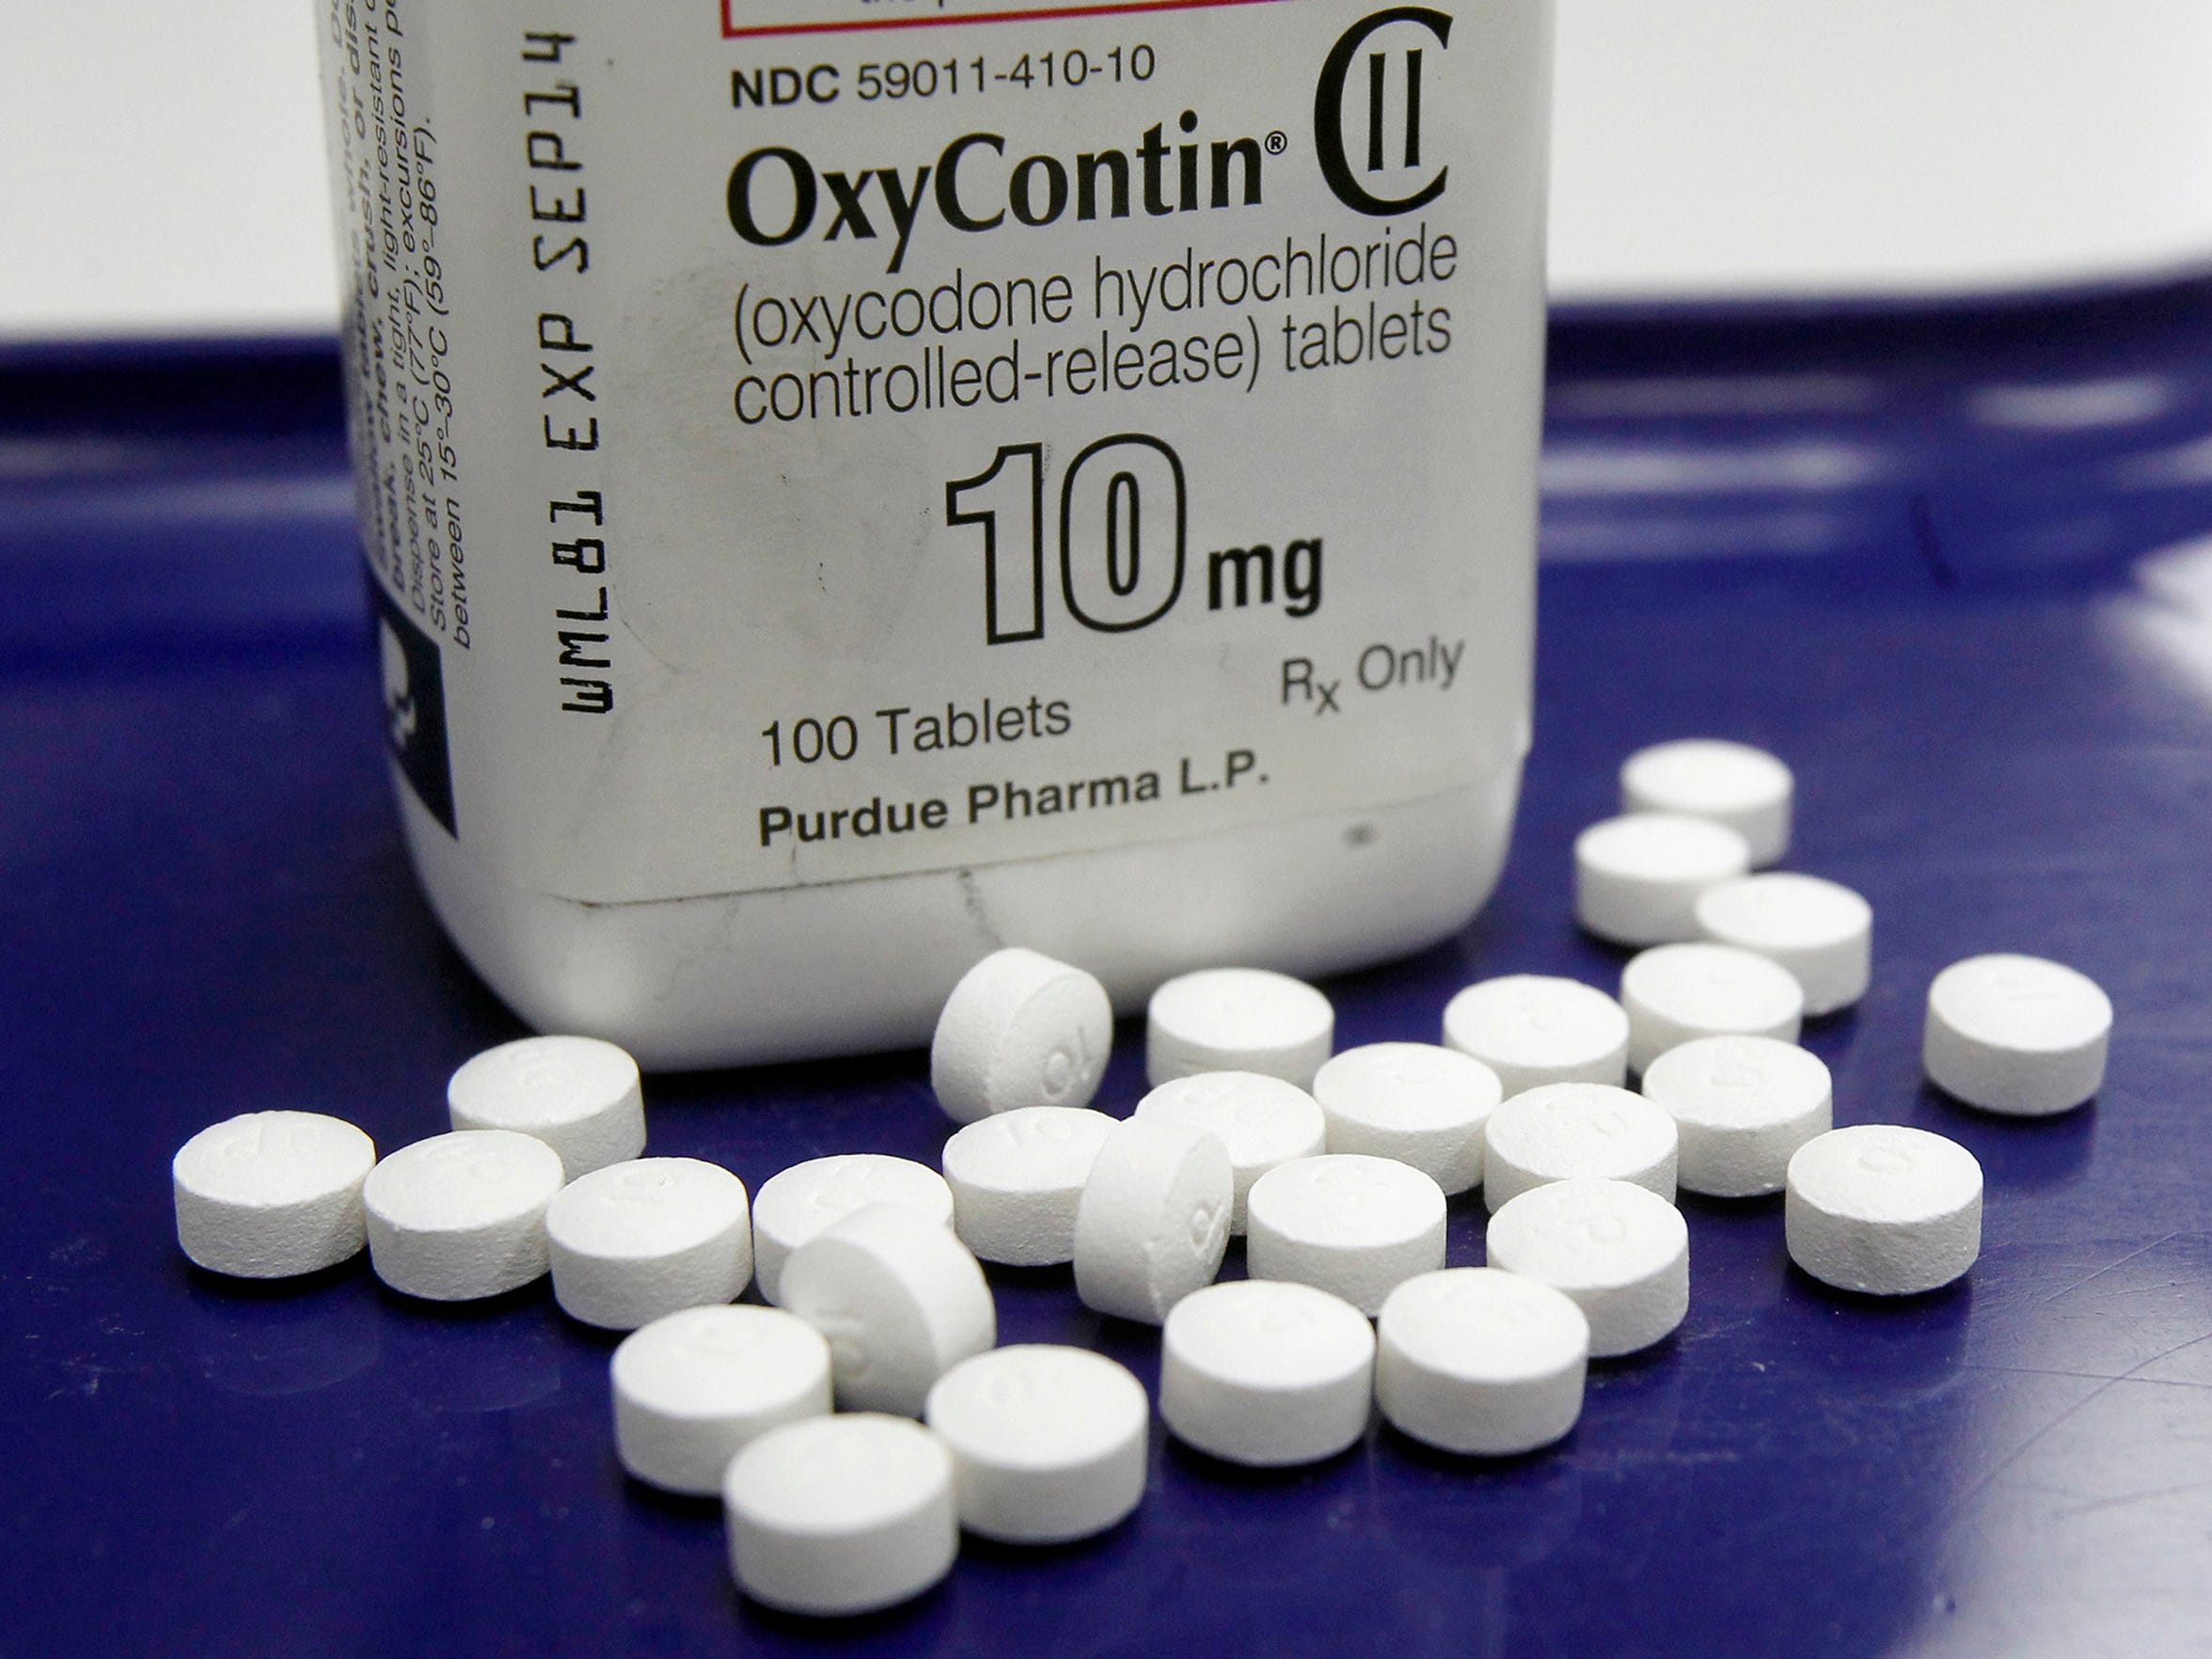 OxyContin was the top seller for Purdue Pharma, a giant drugmaker accused of sparking the opioid crisis in a new lawsuit filed by state officials. The suit accuses Purdue of encouraging over-prescription and downplaying addiction risk through deceptive marketing that targeted doctors who were most likely to prescribe opioids.